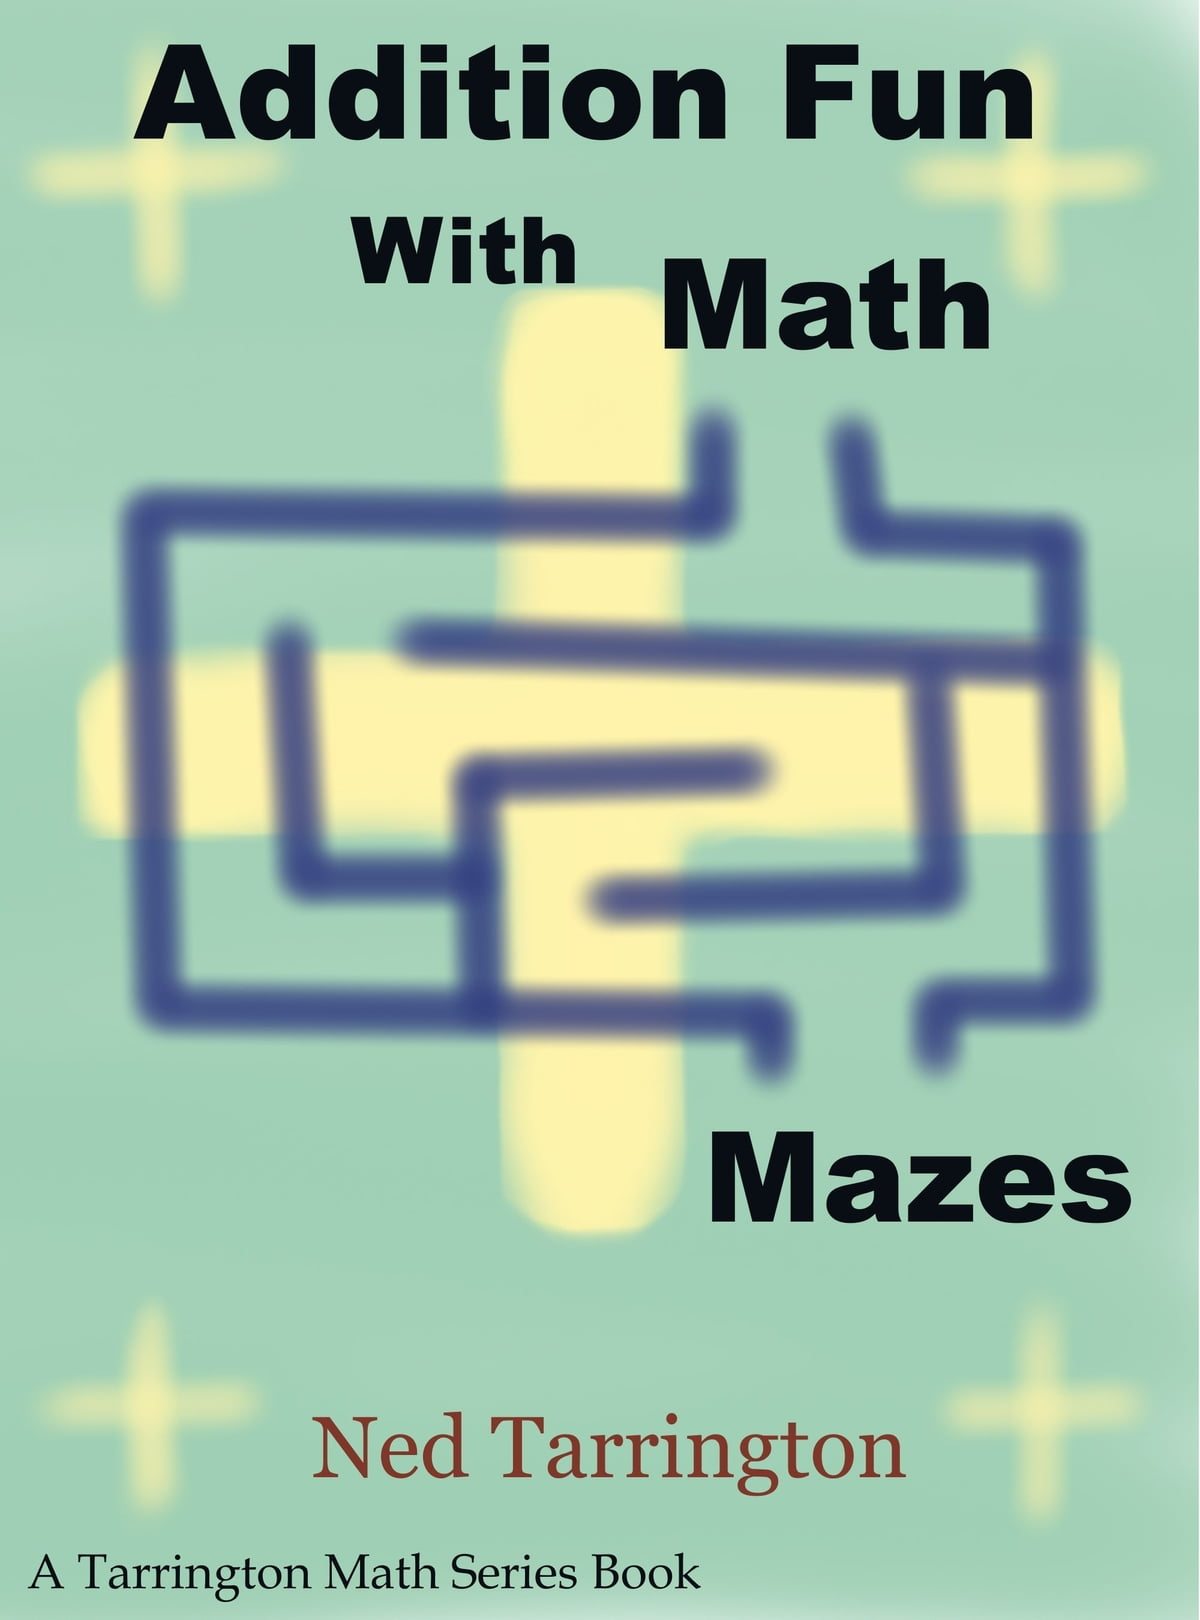 Addition Fun With Math Mazes eBook by Ned Tarrington - 9781458112859 ...